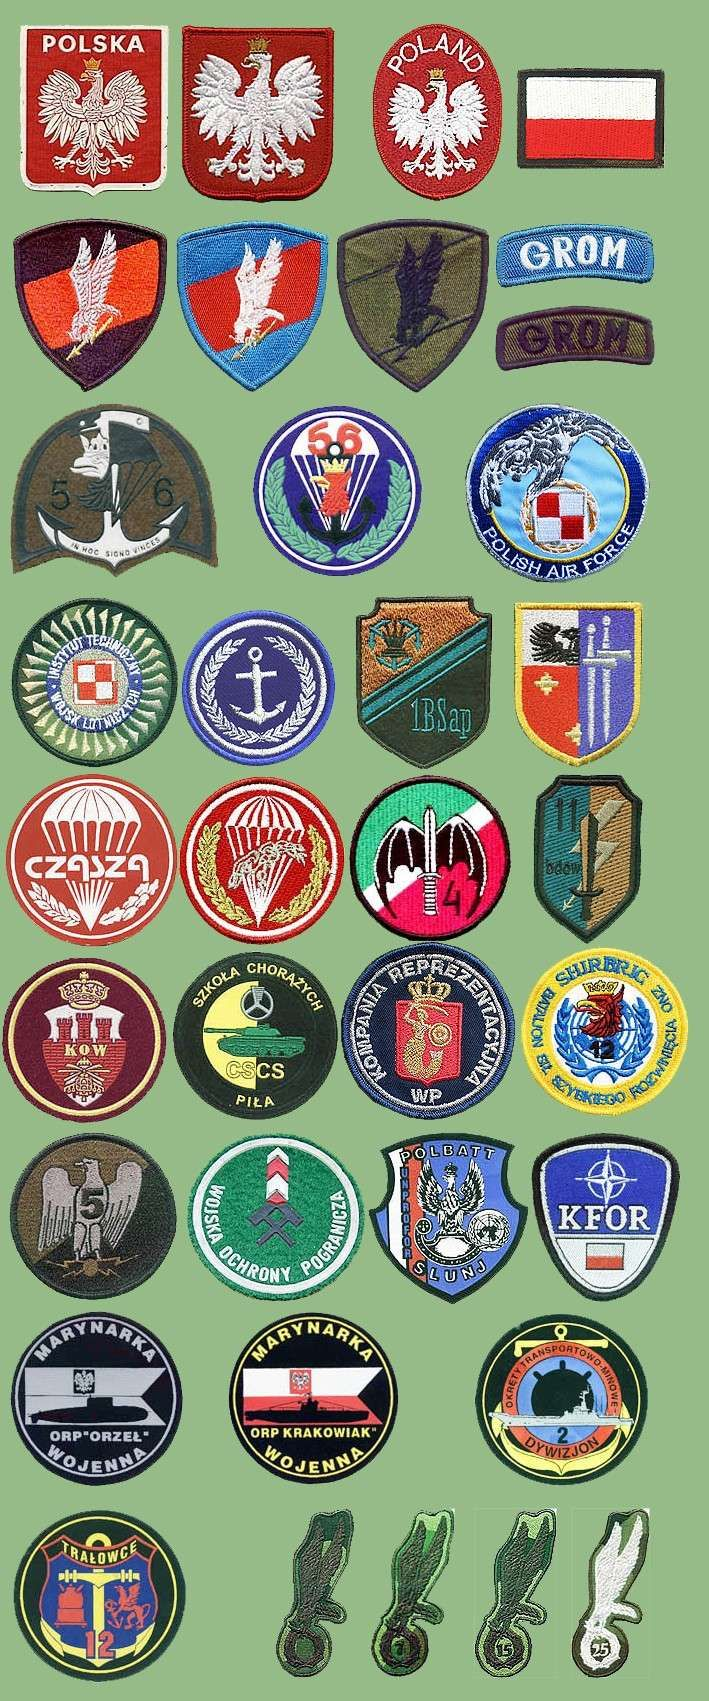 11 Best Military Insignia Images On Pinterest Military Insignia